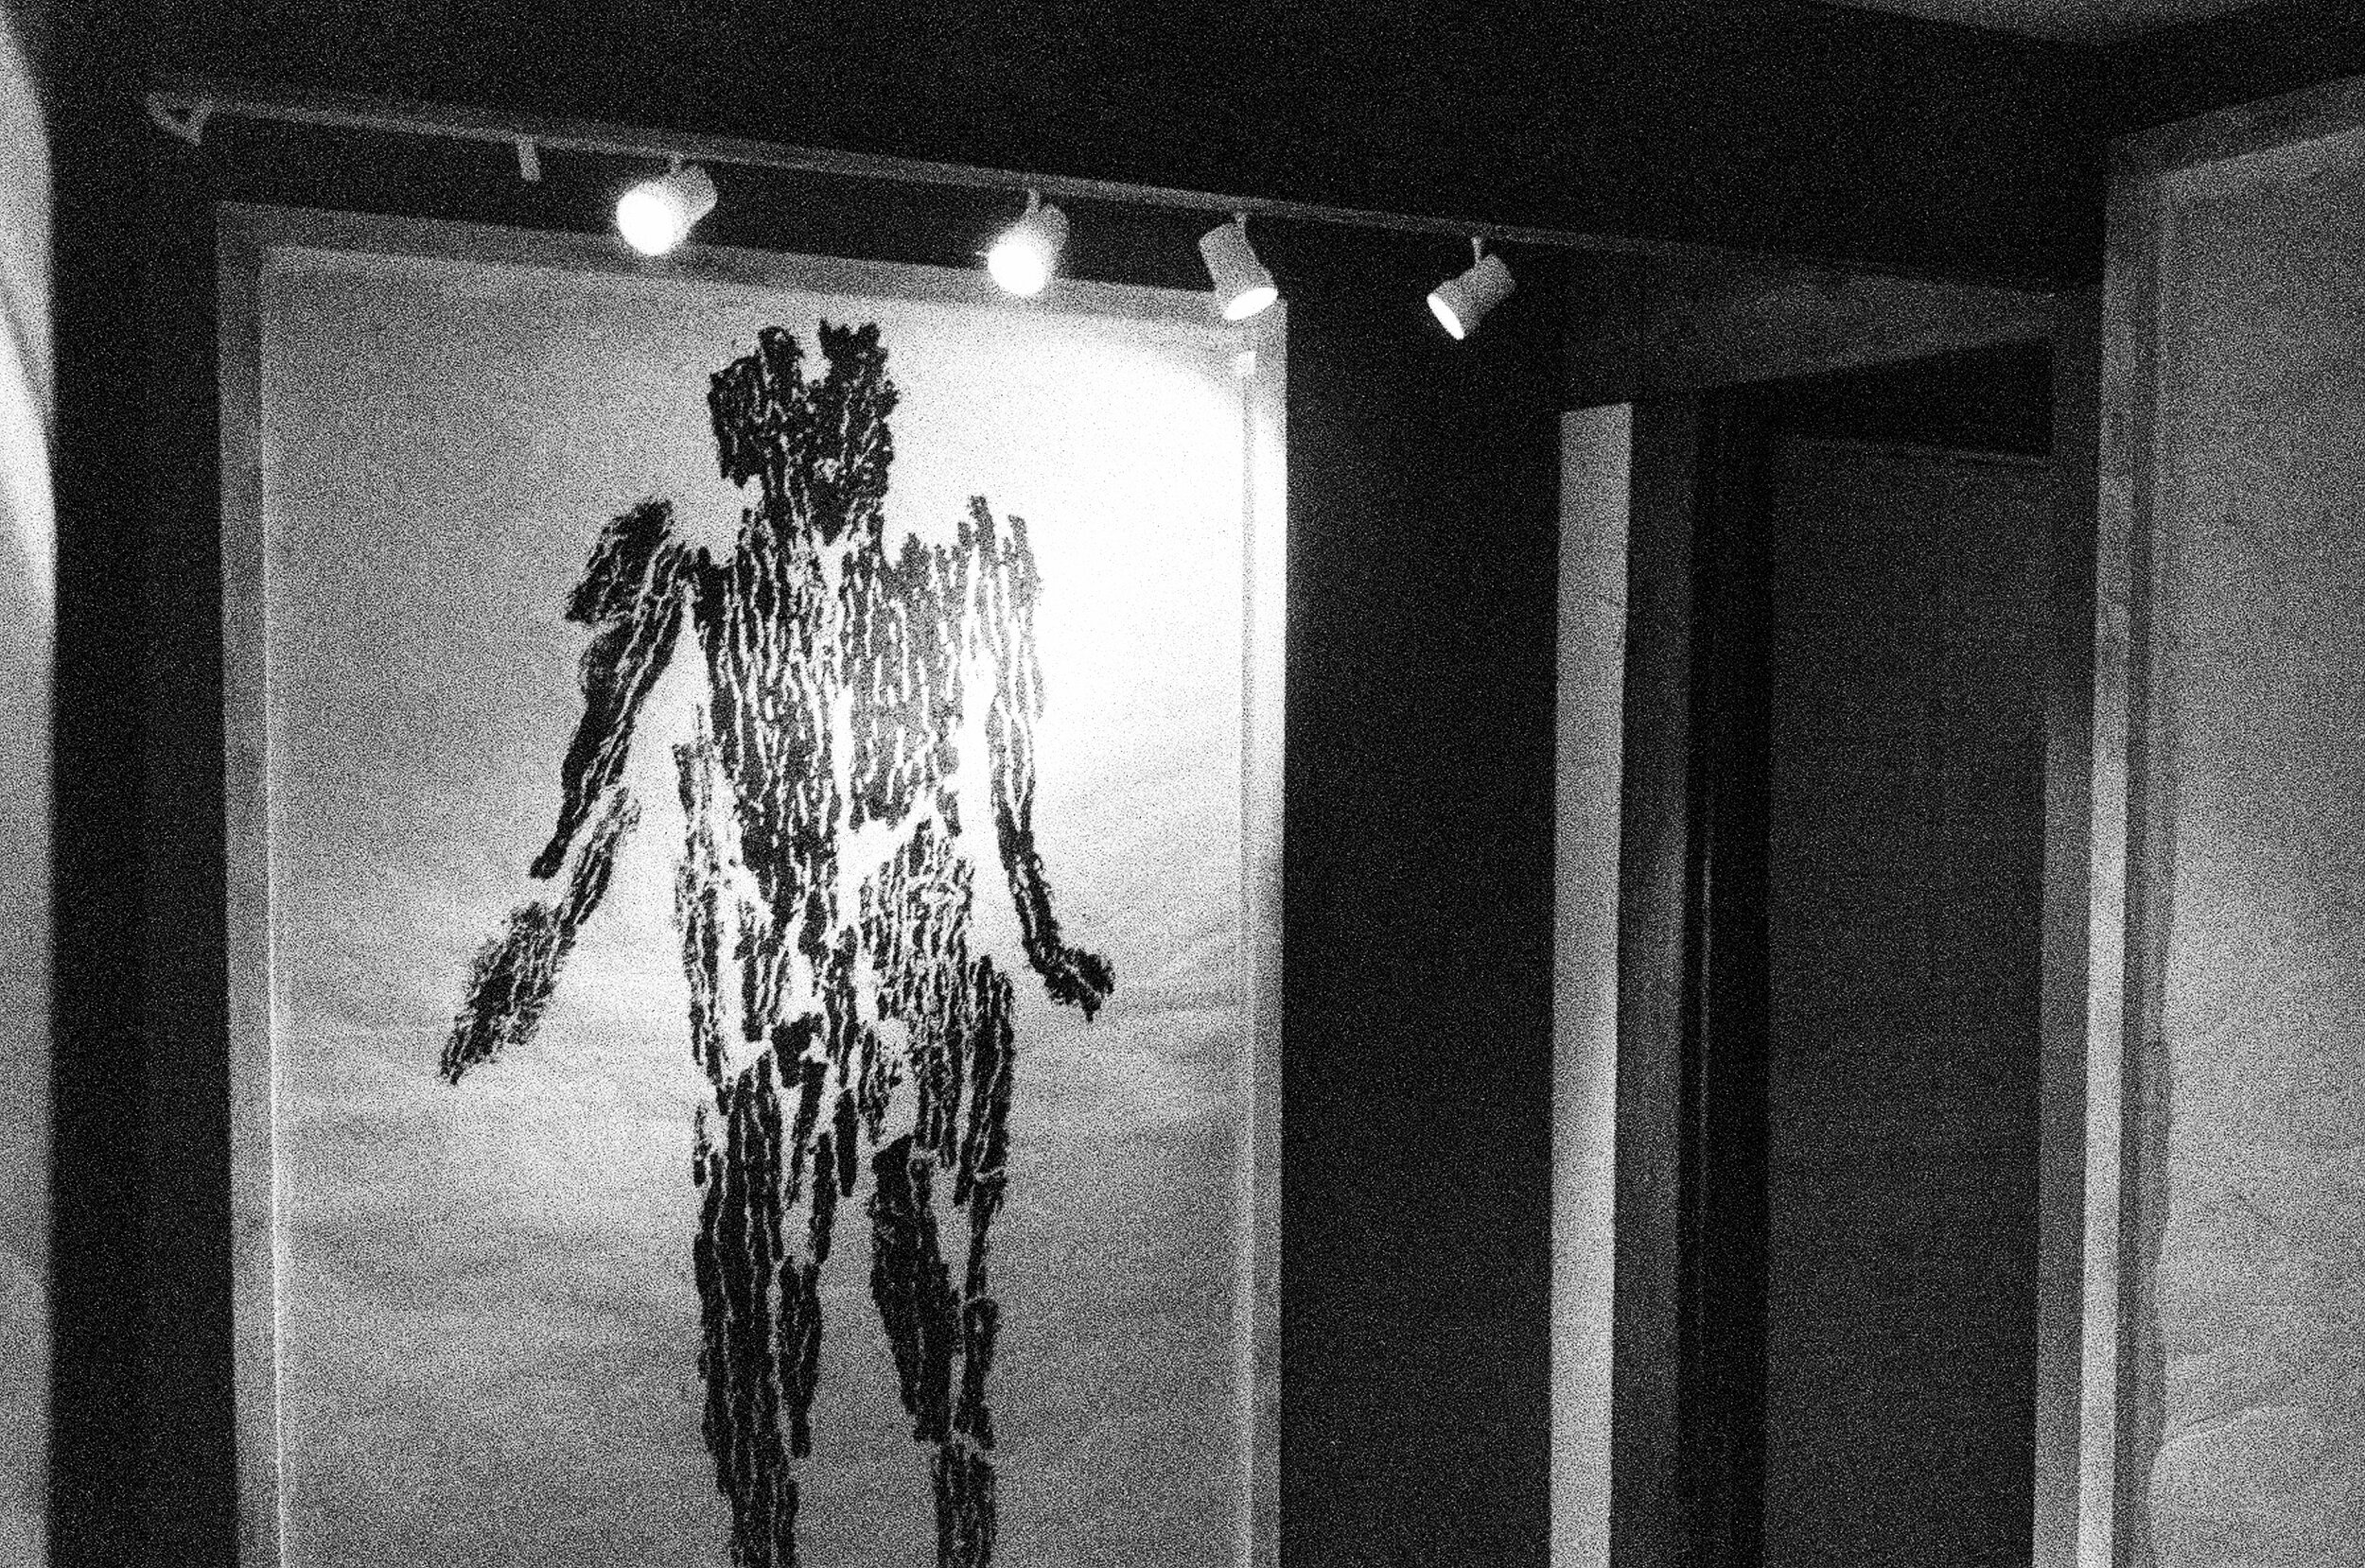 Resident Artist Michele Oka Doner - a print of man made using bark as a stamp.